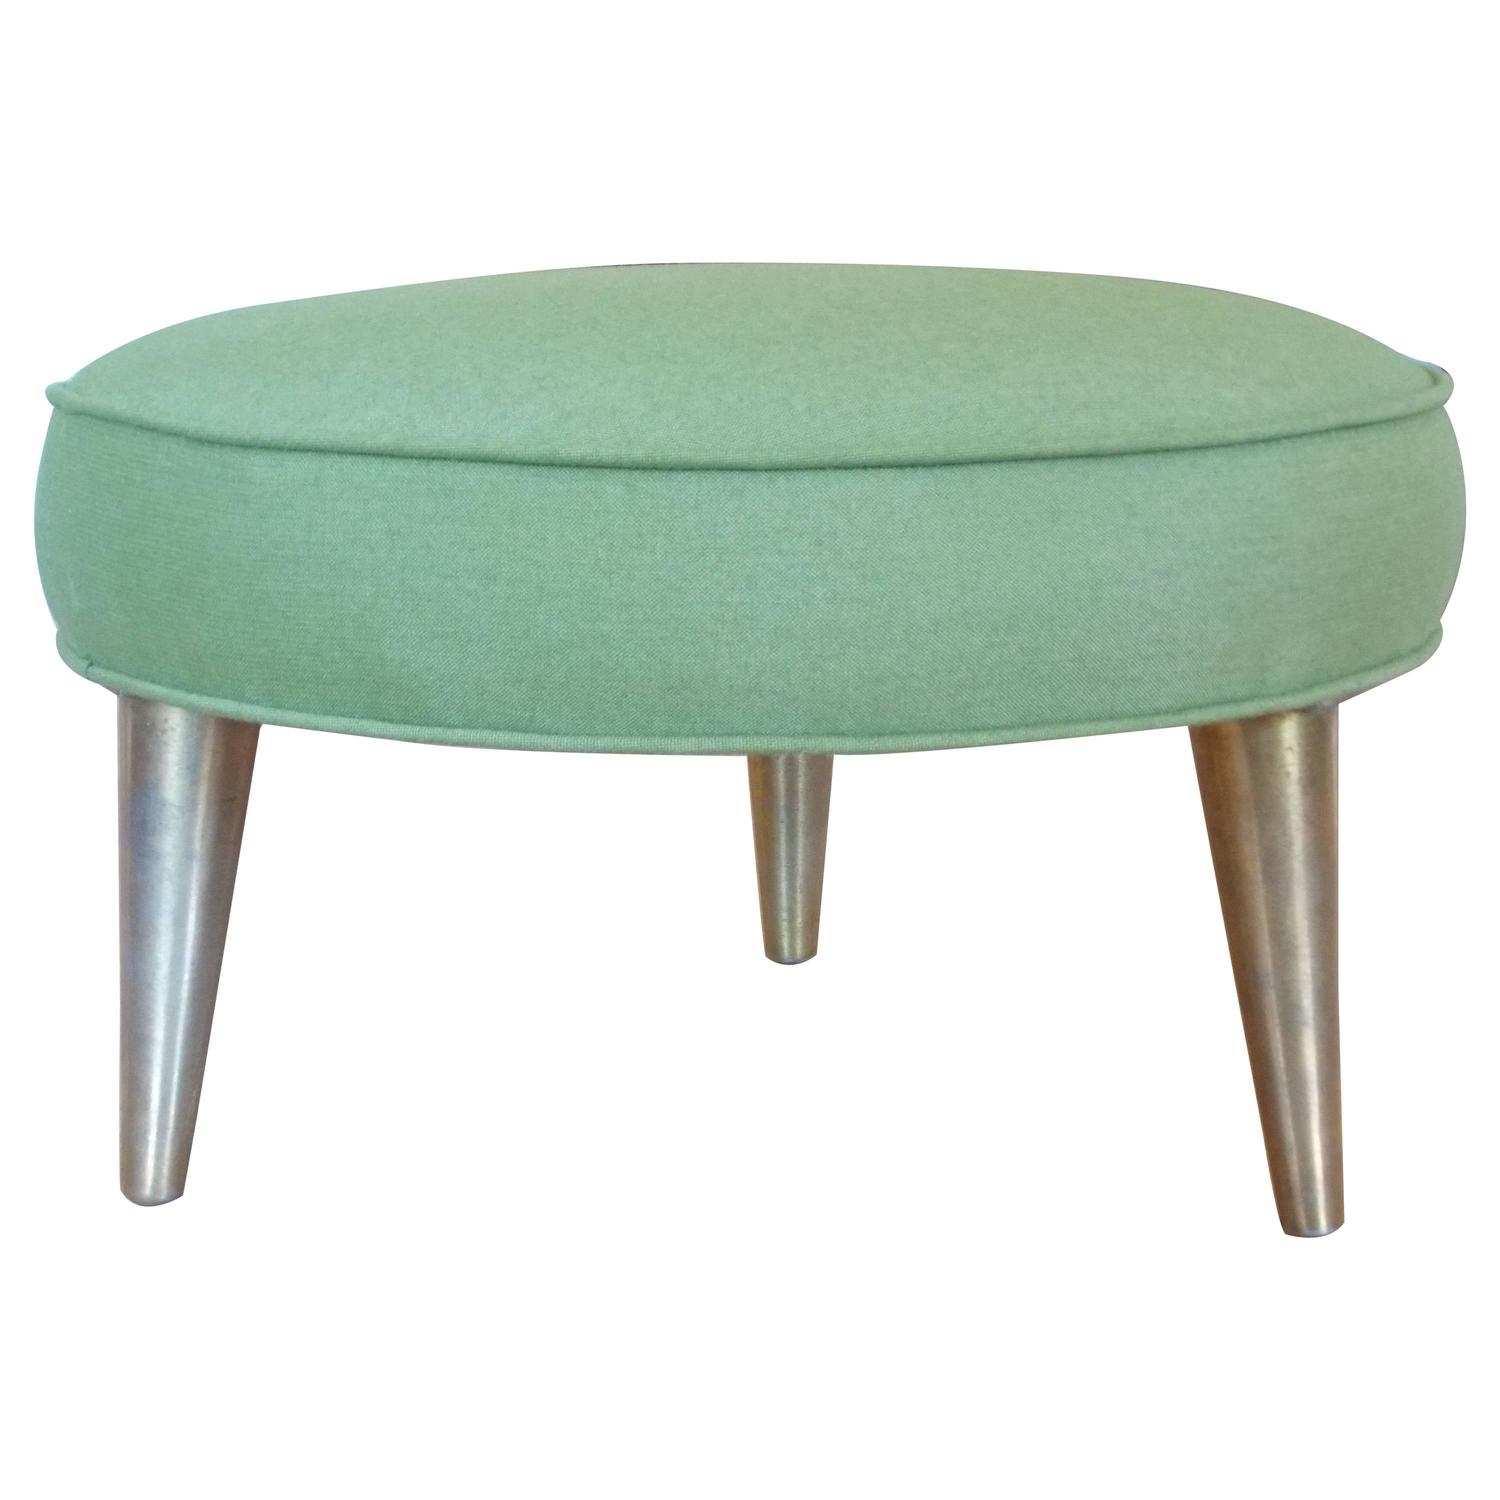 Mid Century Modern Low Accent Stool or Ottoman at 1stdibs